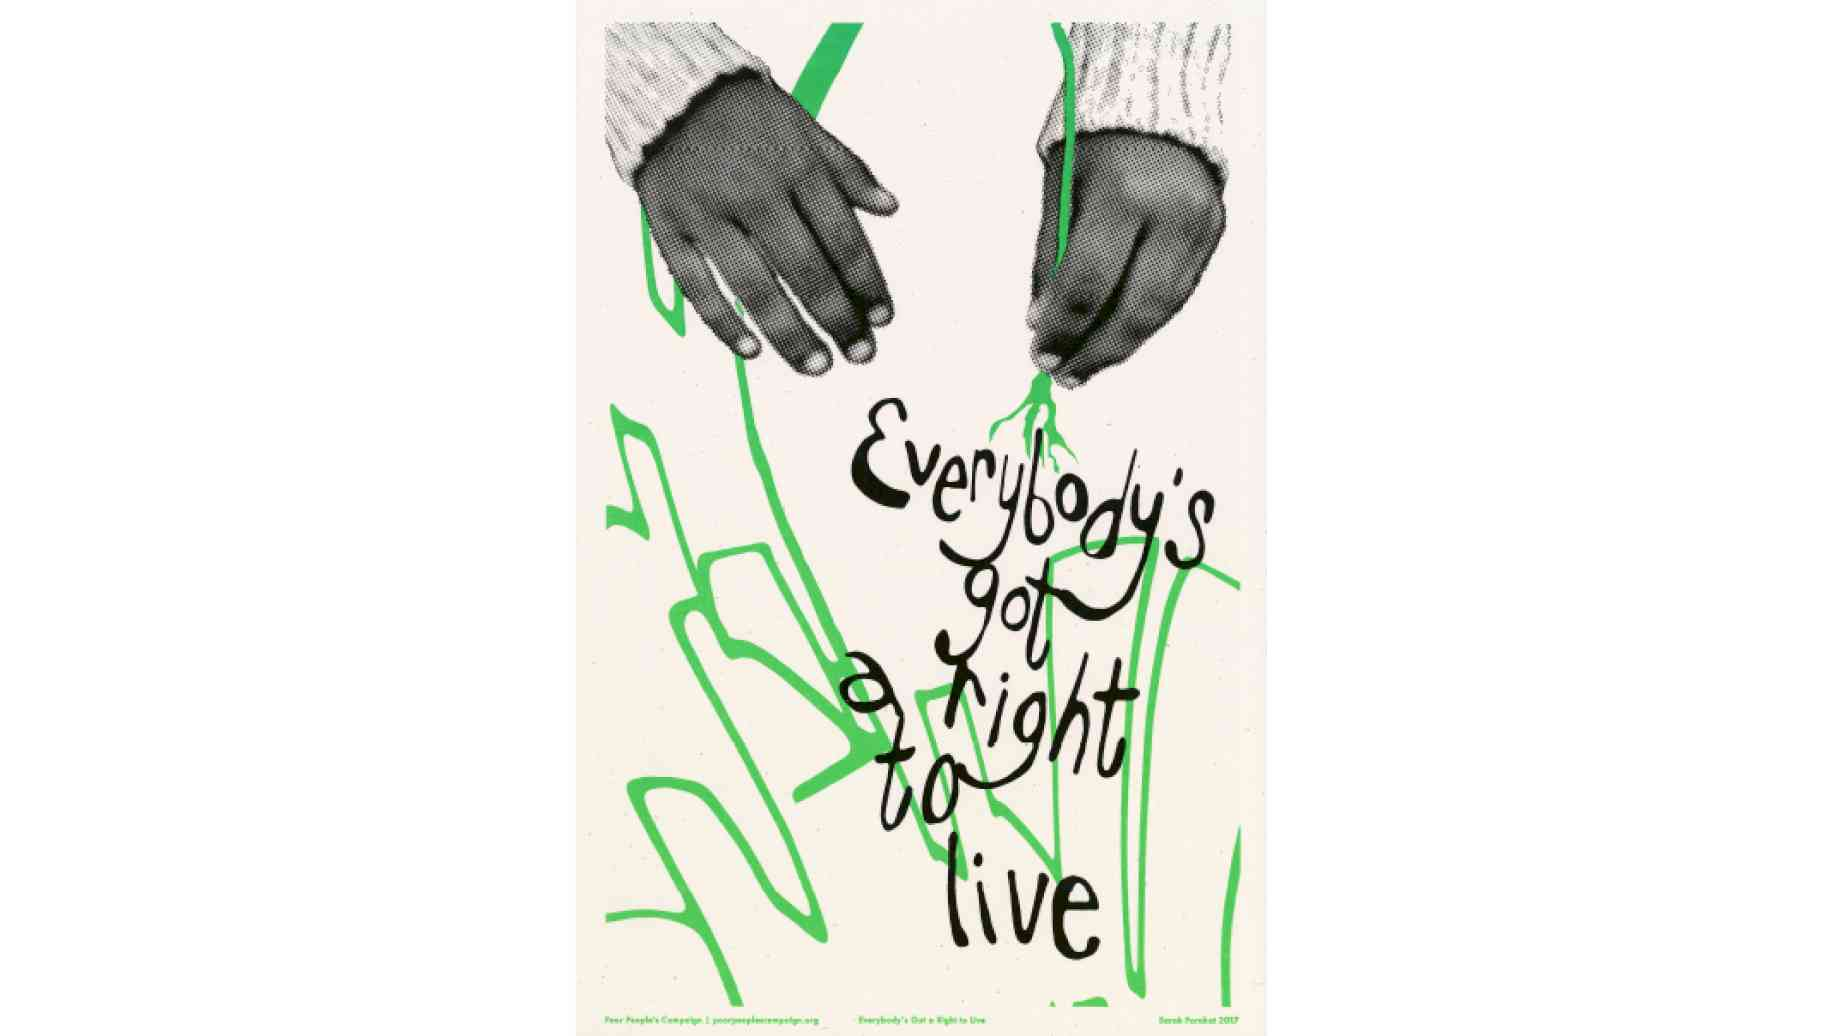 "Grainy black and white hands with wool sweater writs tug downward on the end of a drawn green line, which forms shapes below like buildings or plants. Scrawled atop the line in black are words that read ""Everybody"